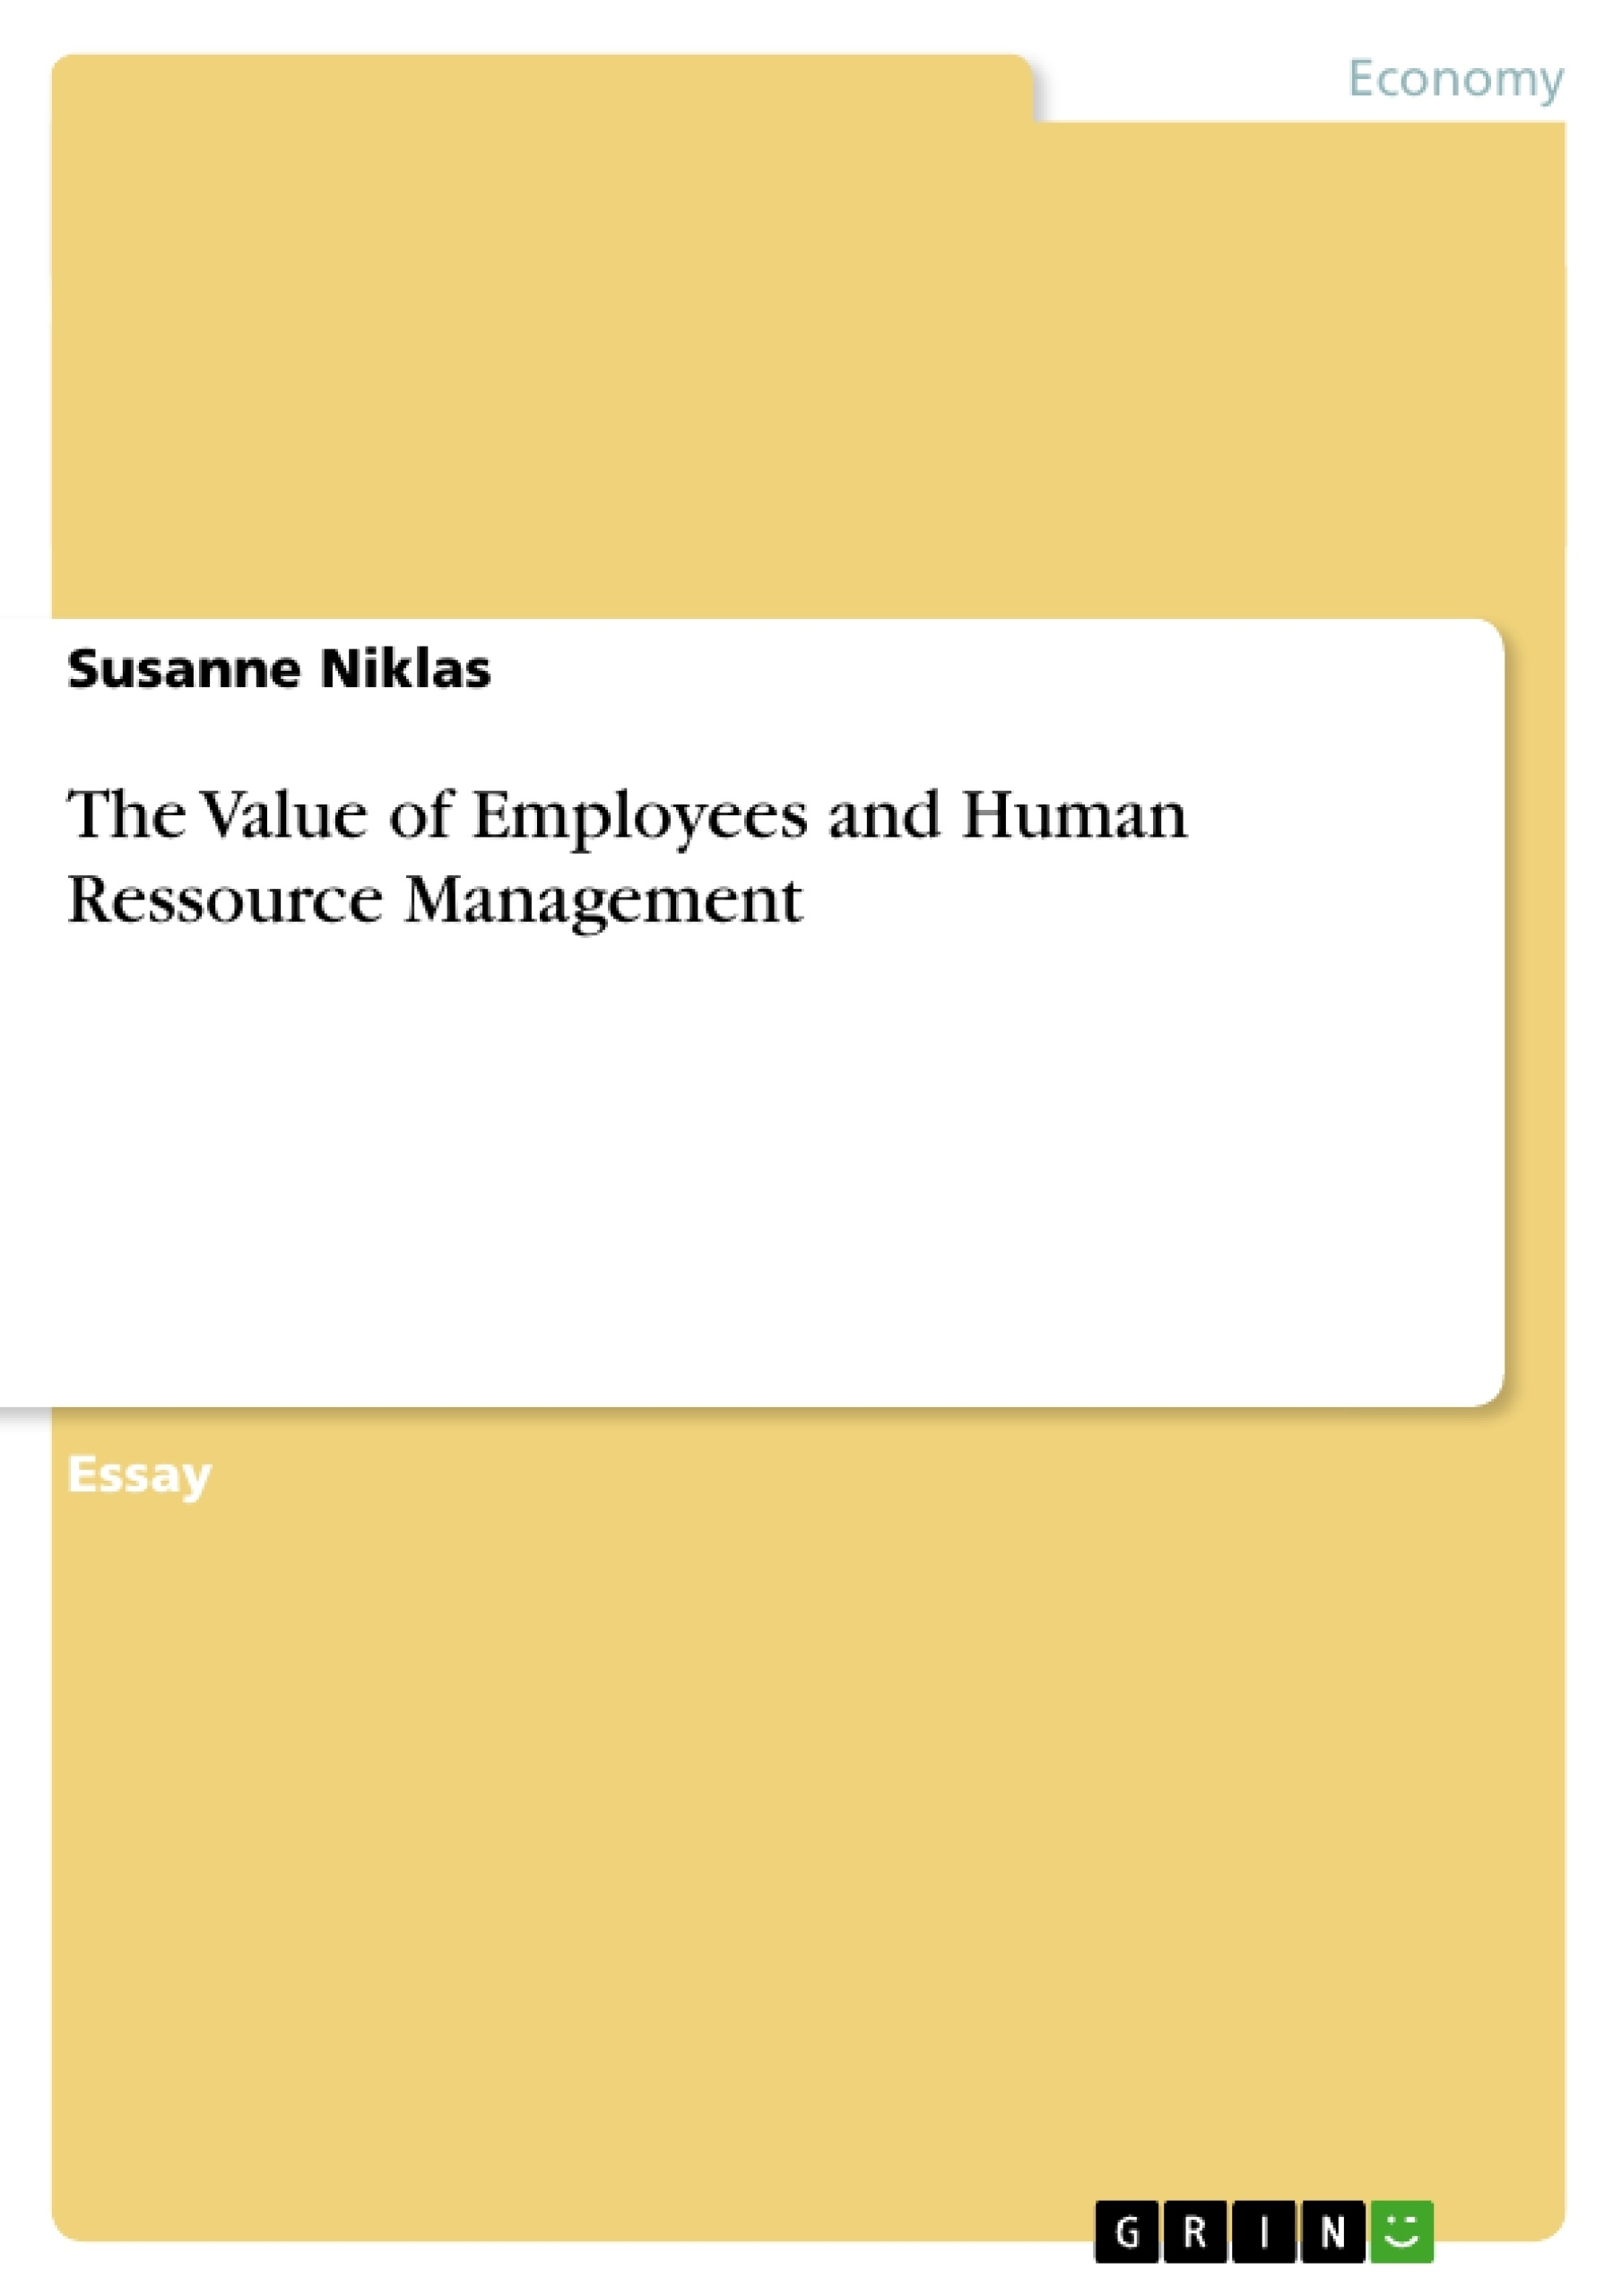 Title: The Value of Employees and Human Ressource Management